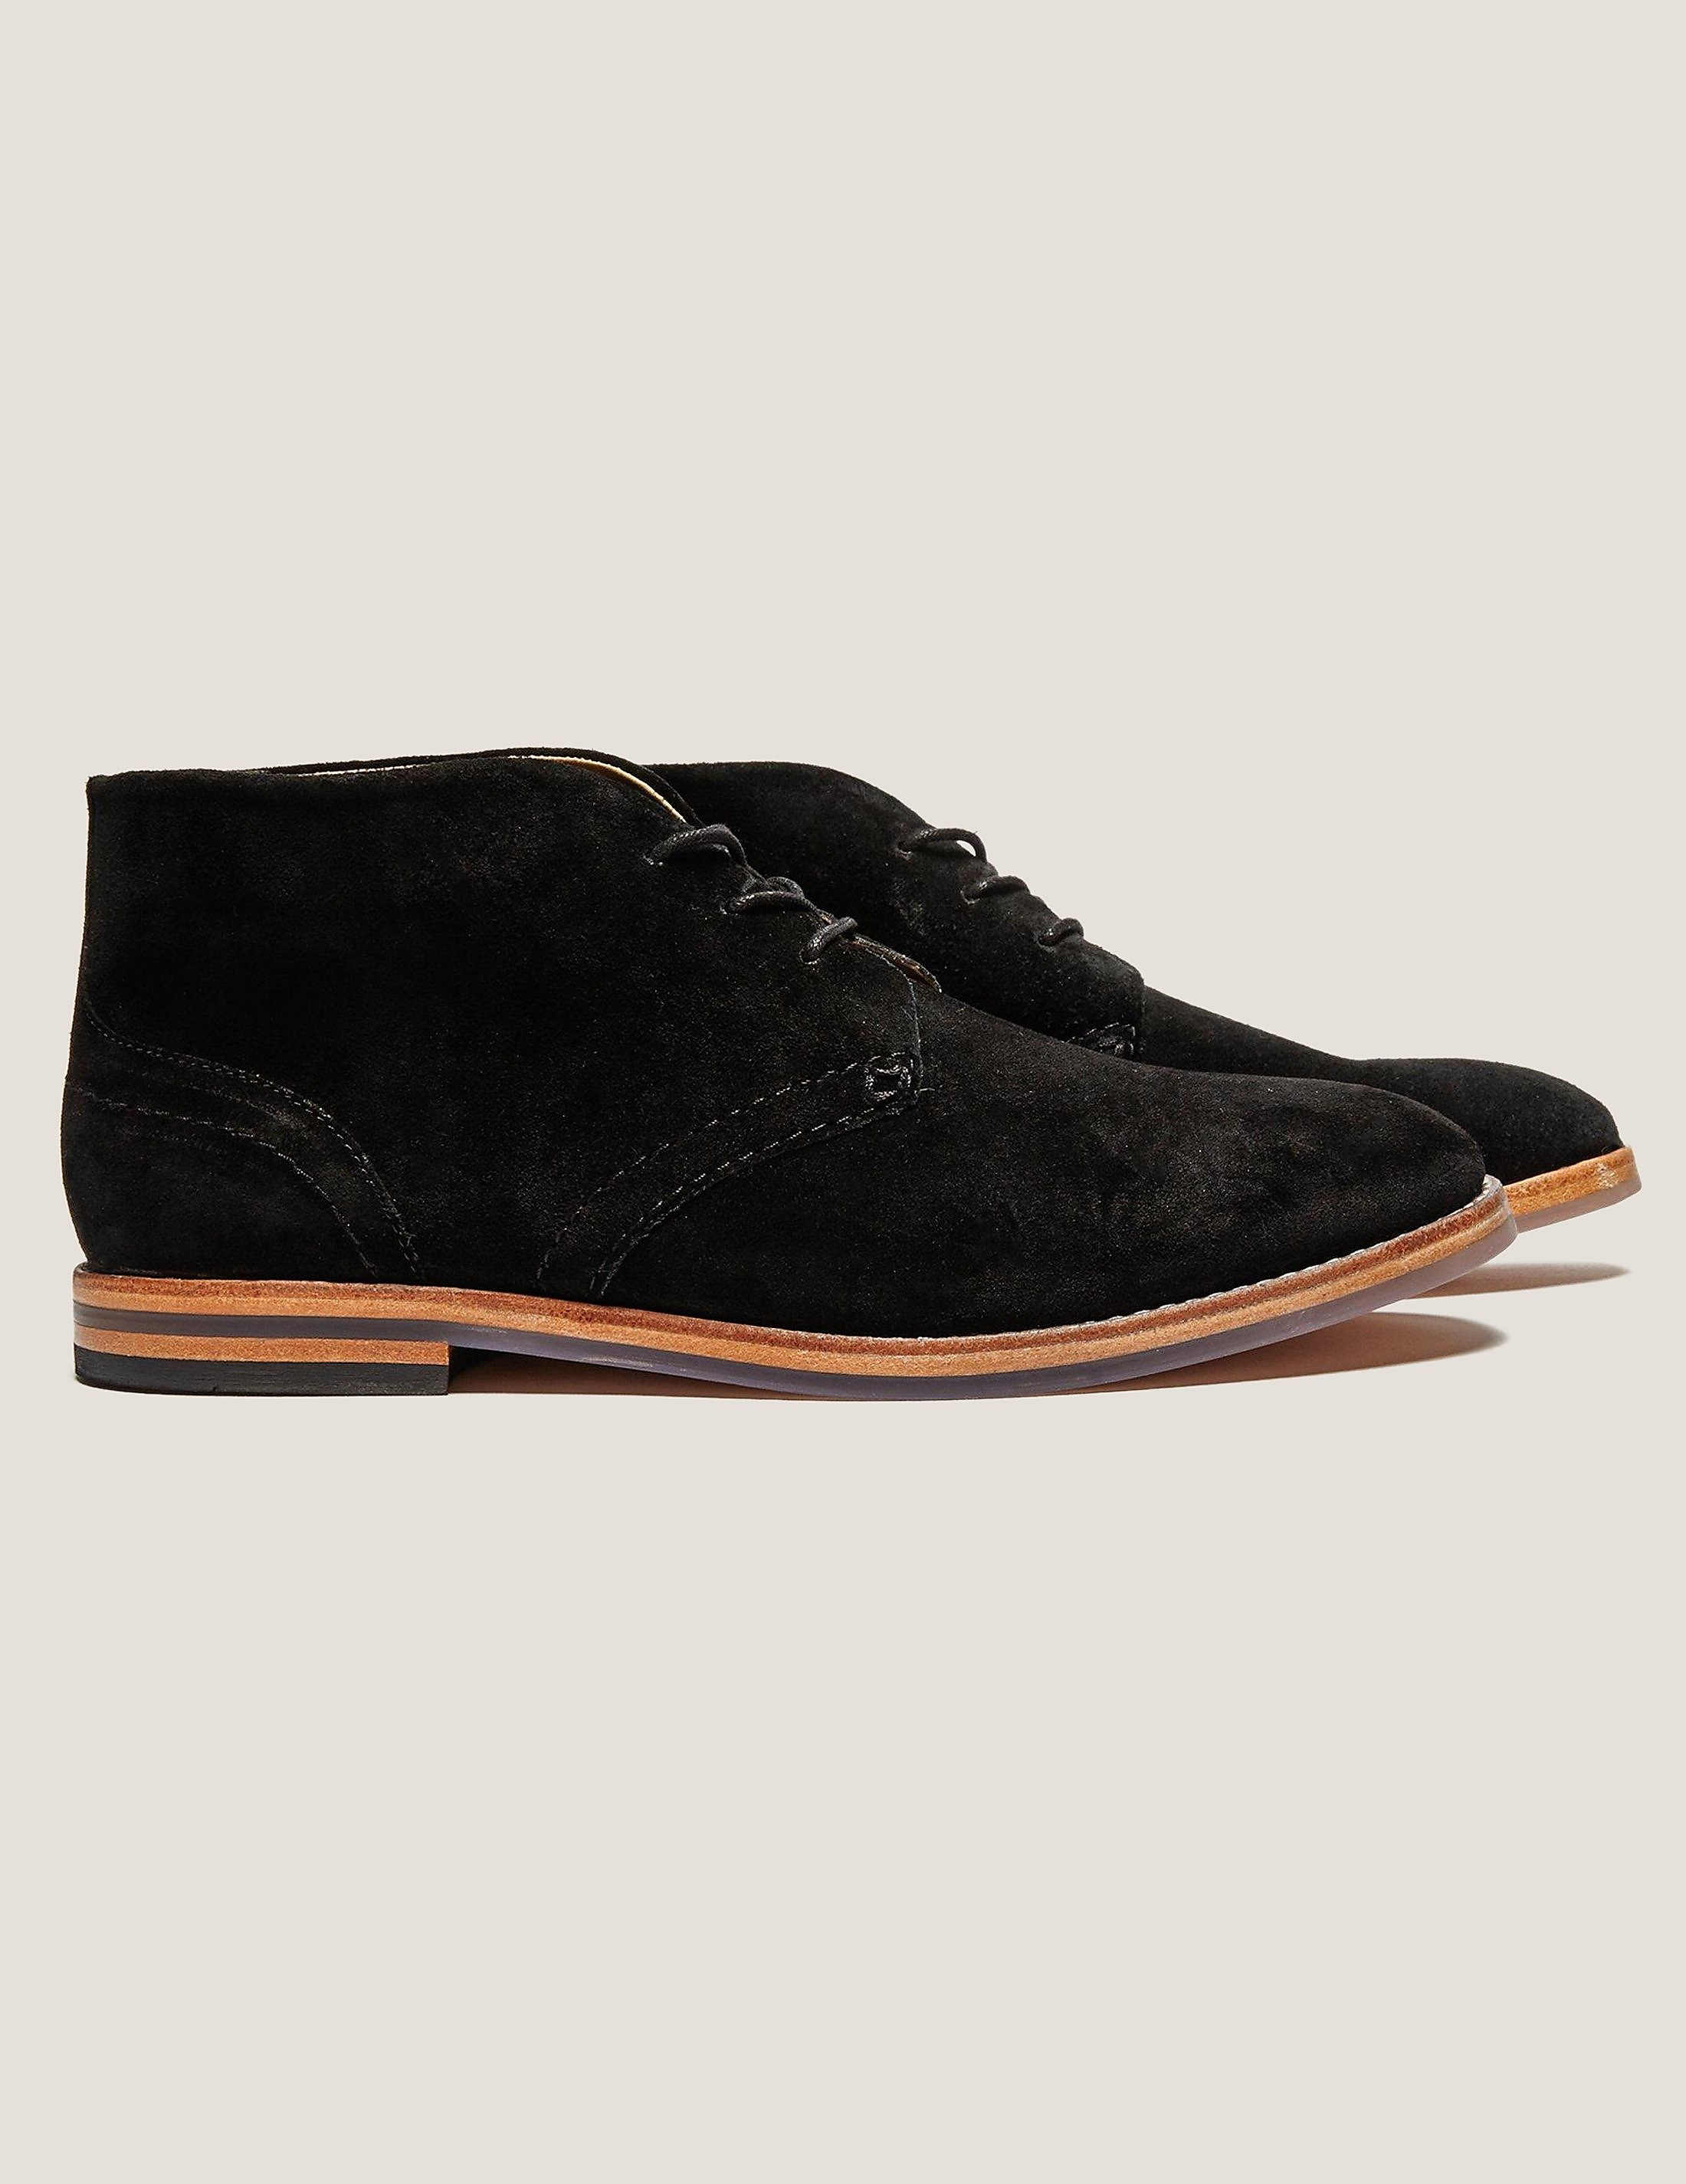 H by Hudson Houghton Suede Shoe